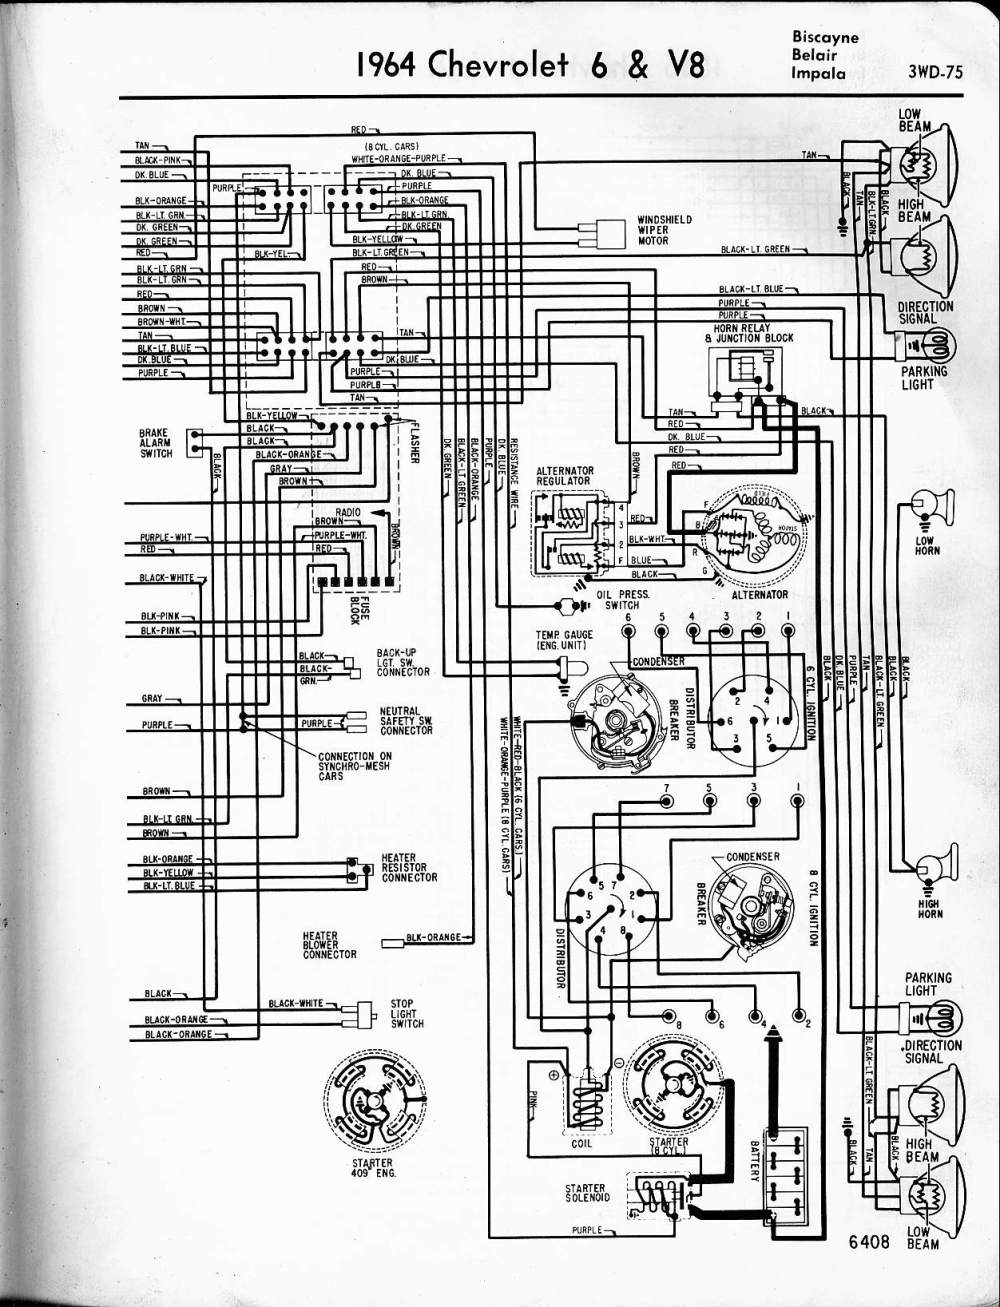 medium resolution of 1964 impala fuse box diagram wiring diagram progresif1964 chevy impala fuse box little wiring diagrams 1964